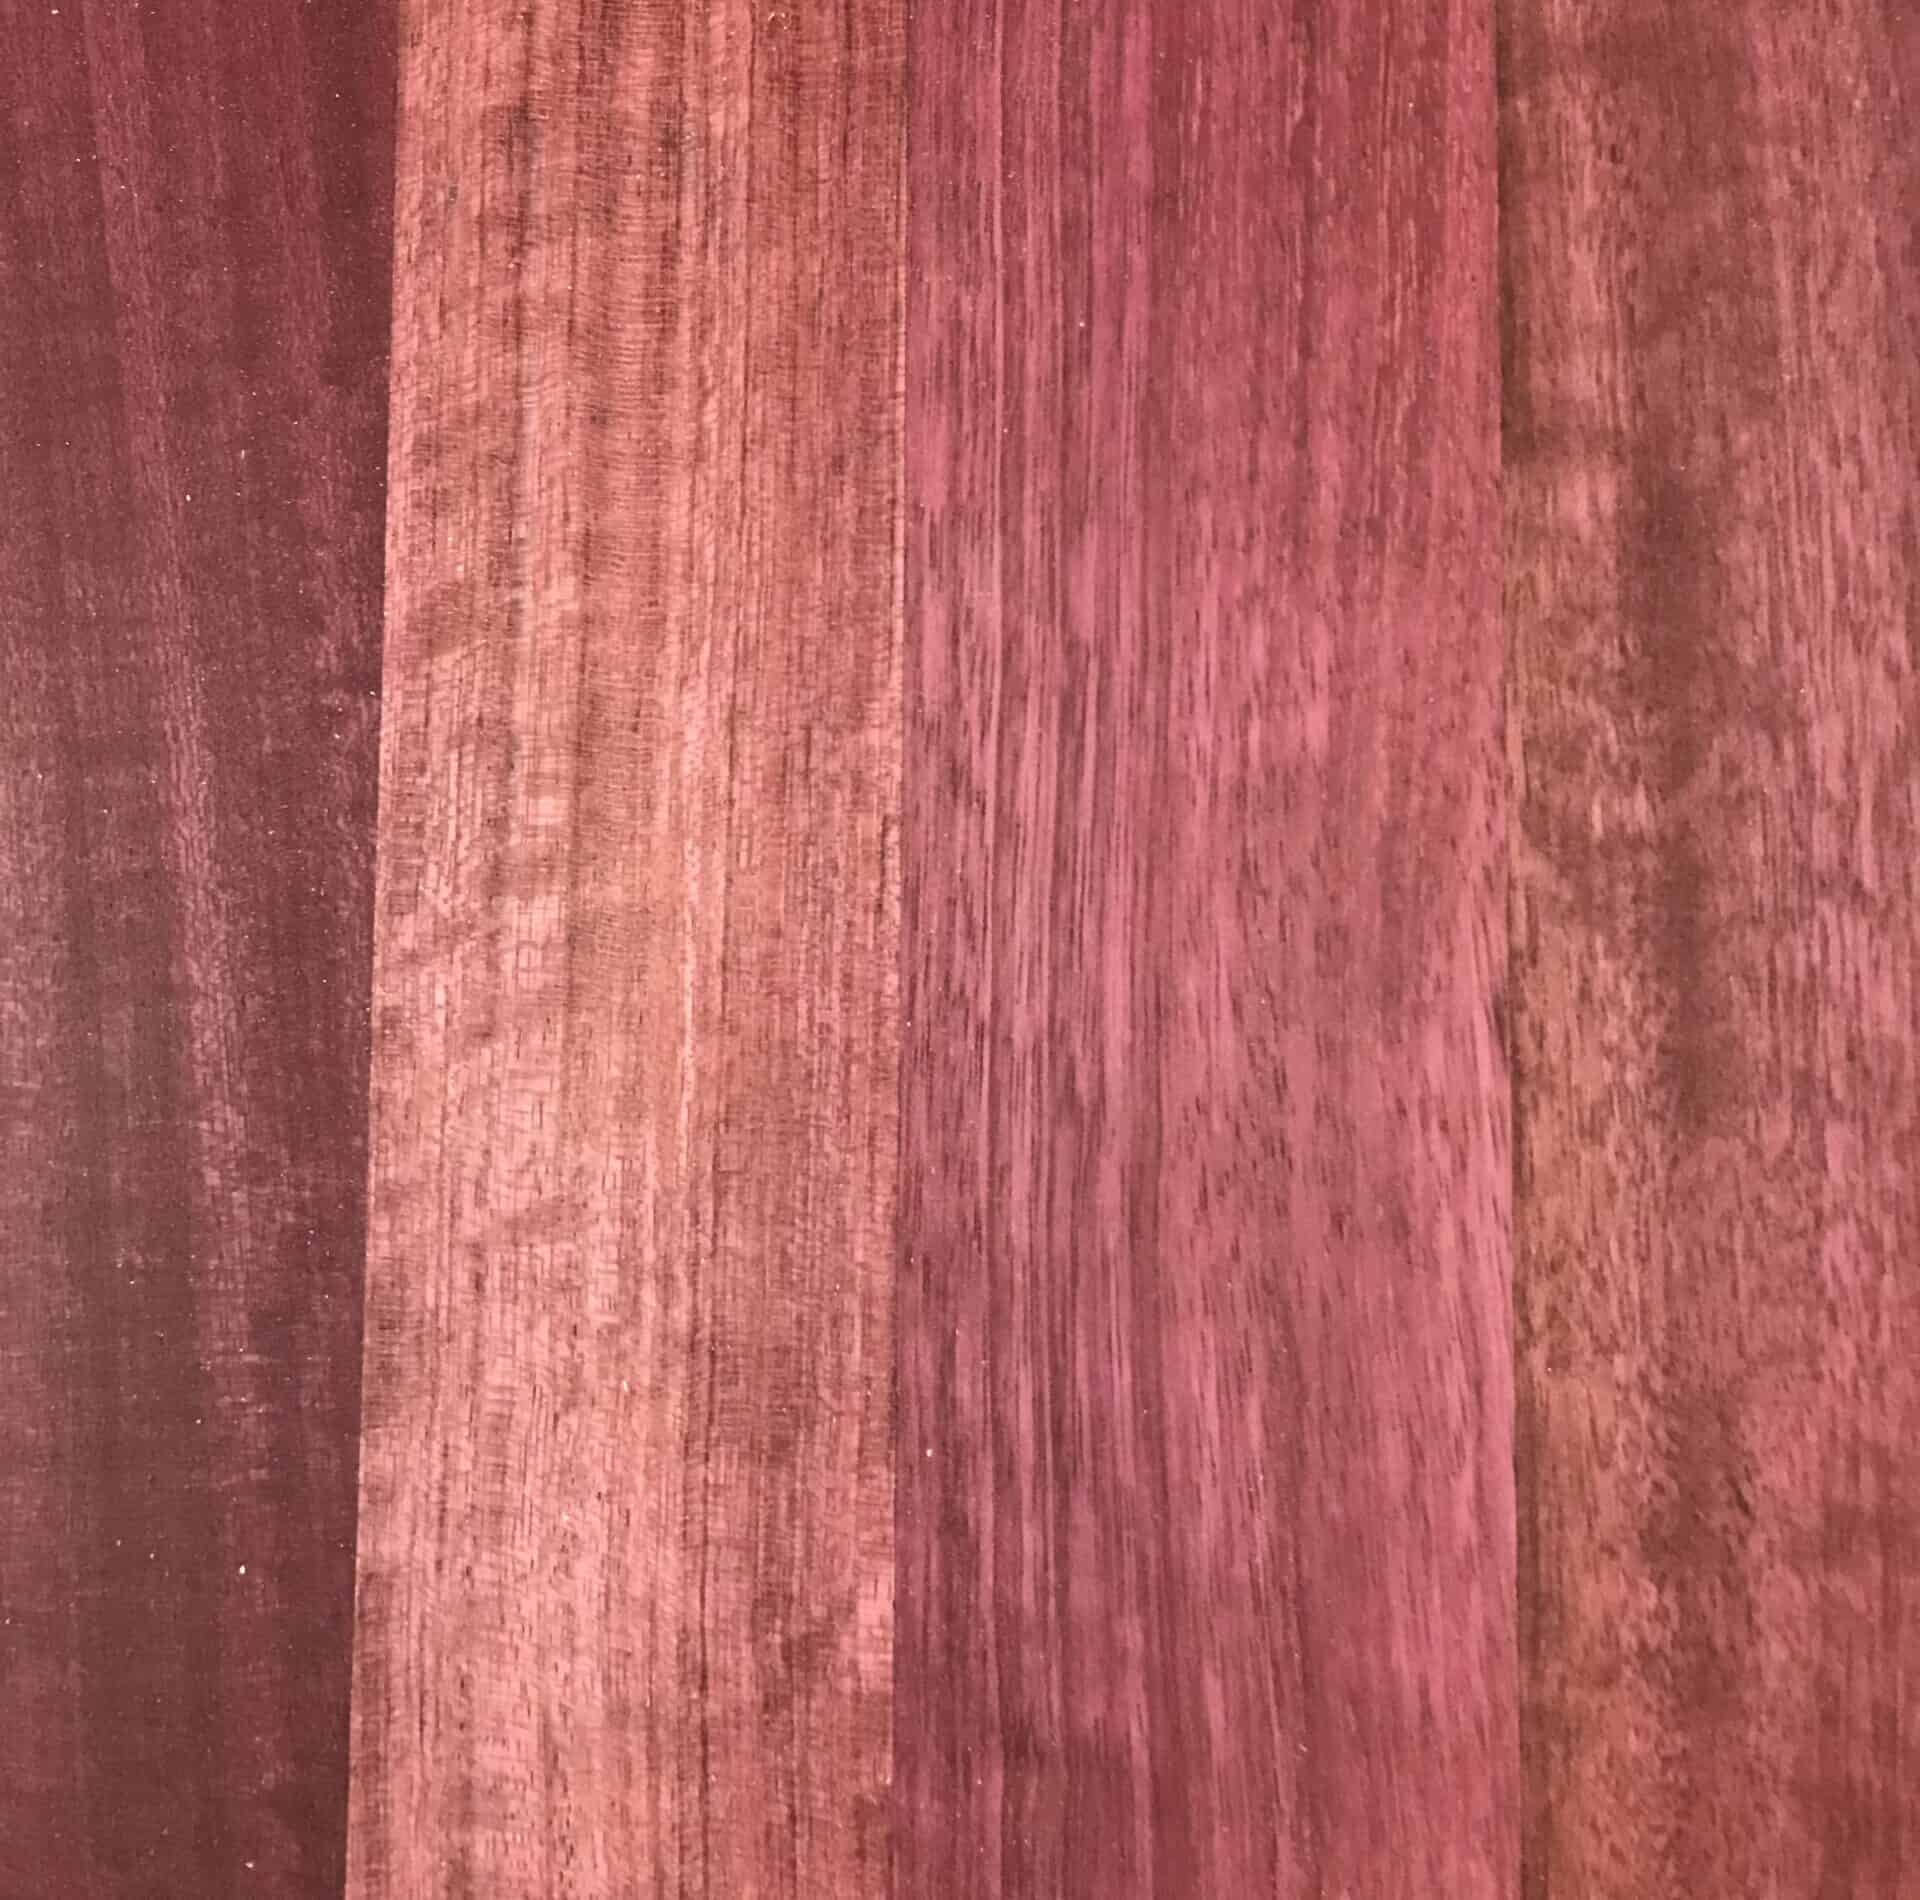 Purpleheart timber